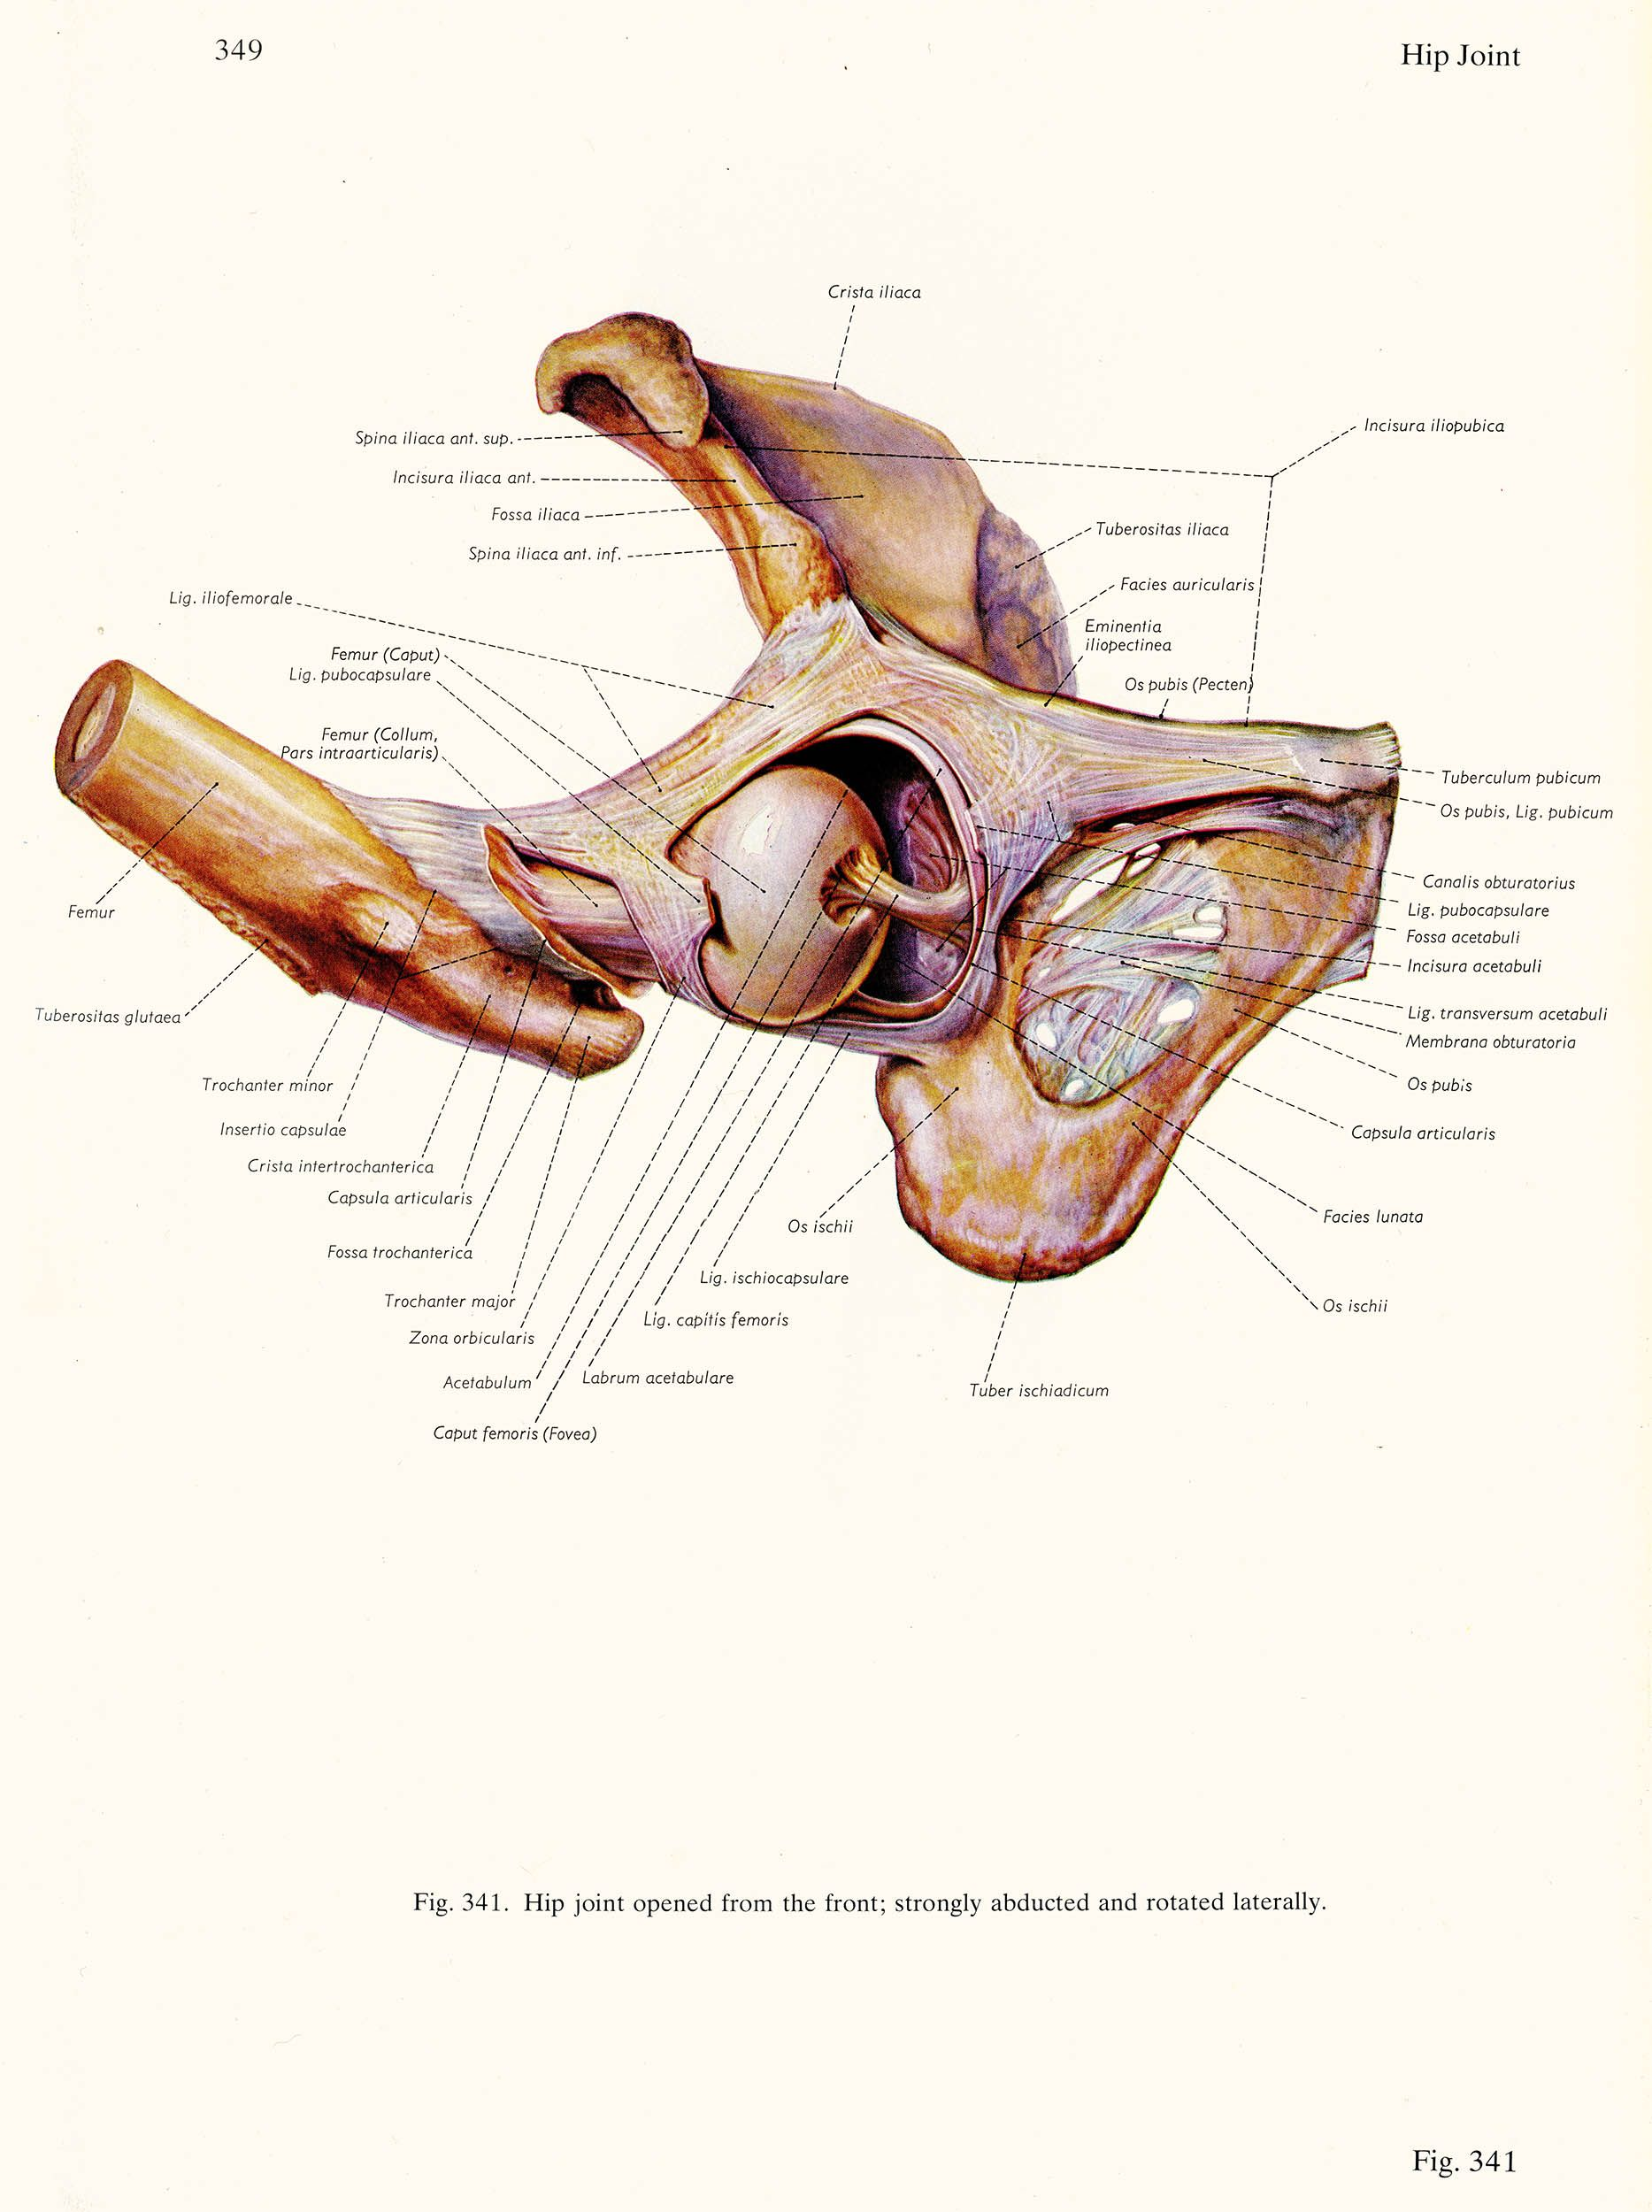 Hip joint opened from the front, click for larger image | Anatomie ...